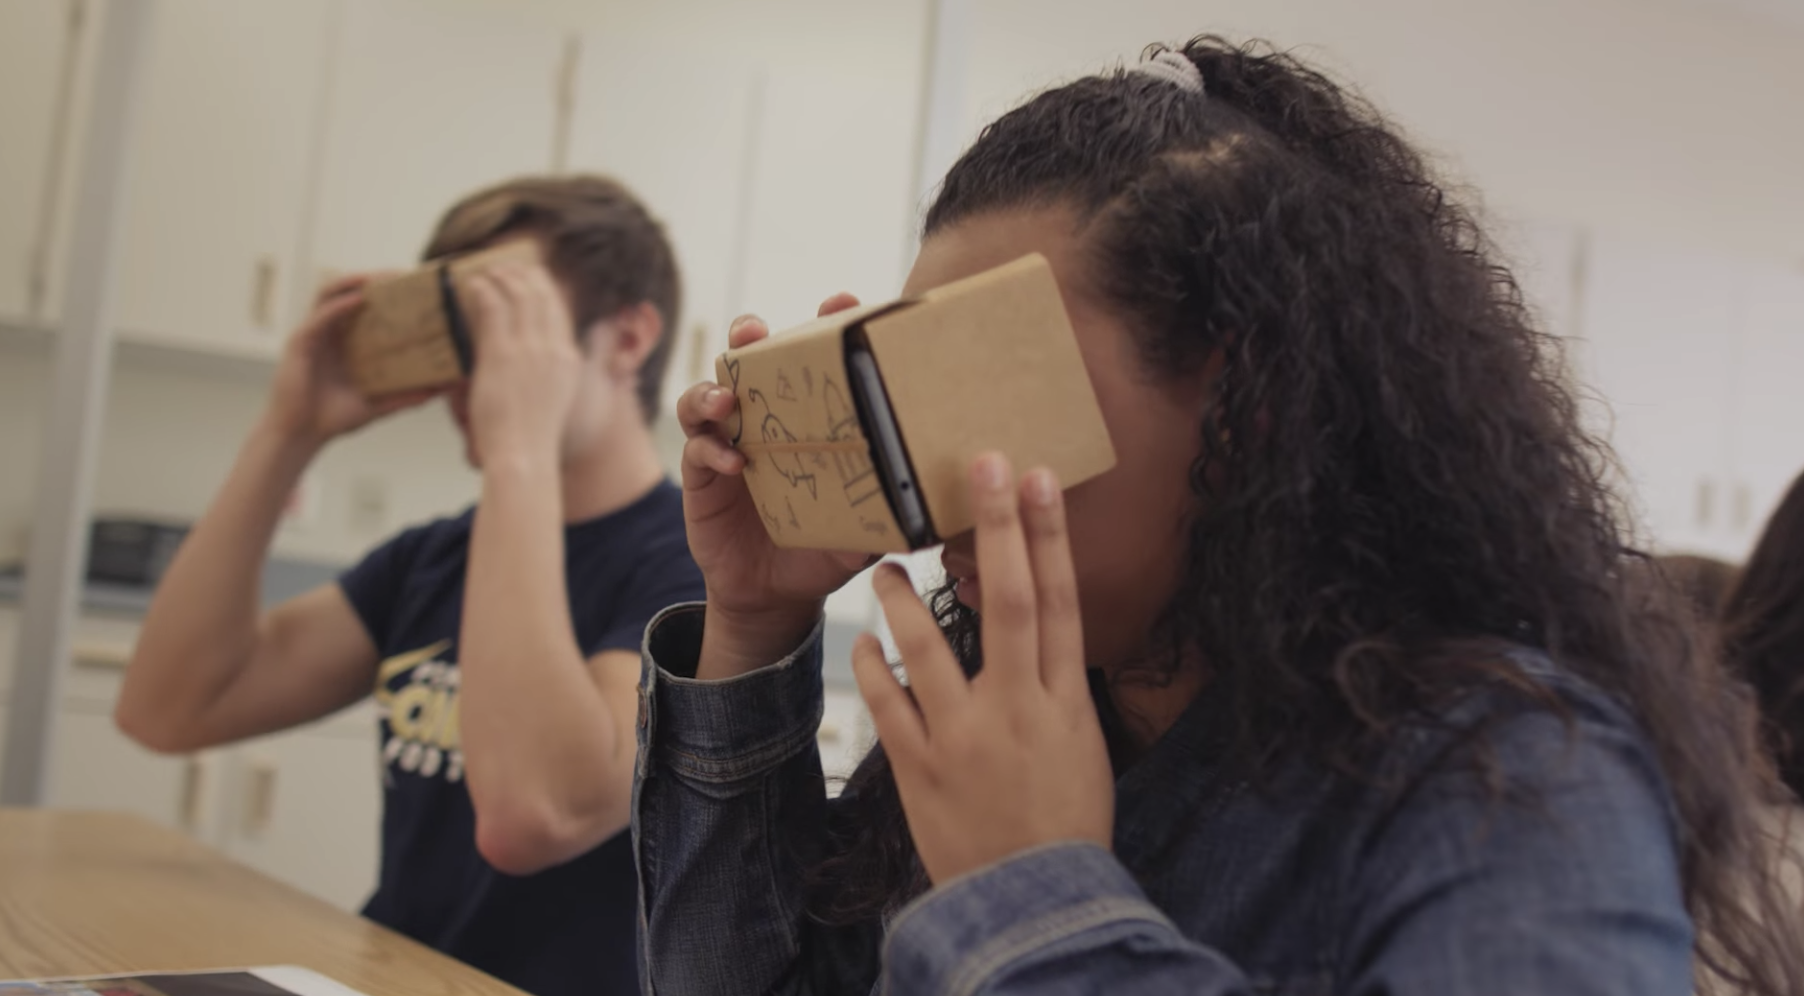 Google Tour Creator enables students to create their own VR tours